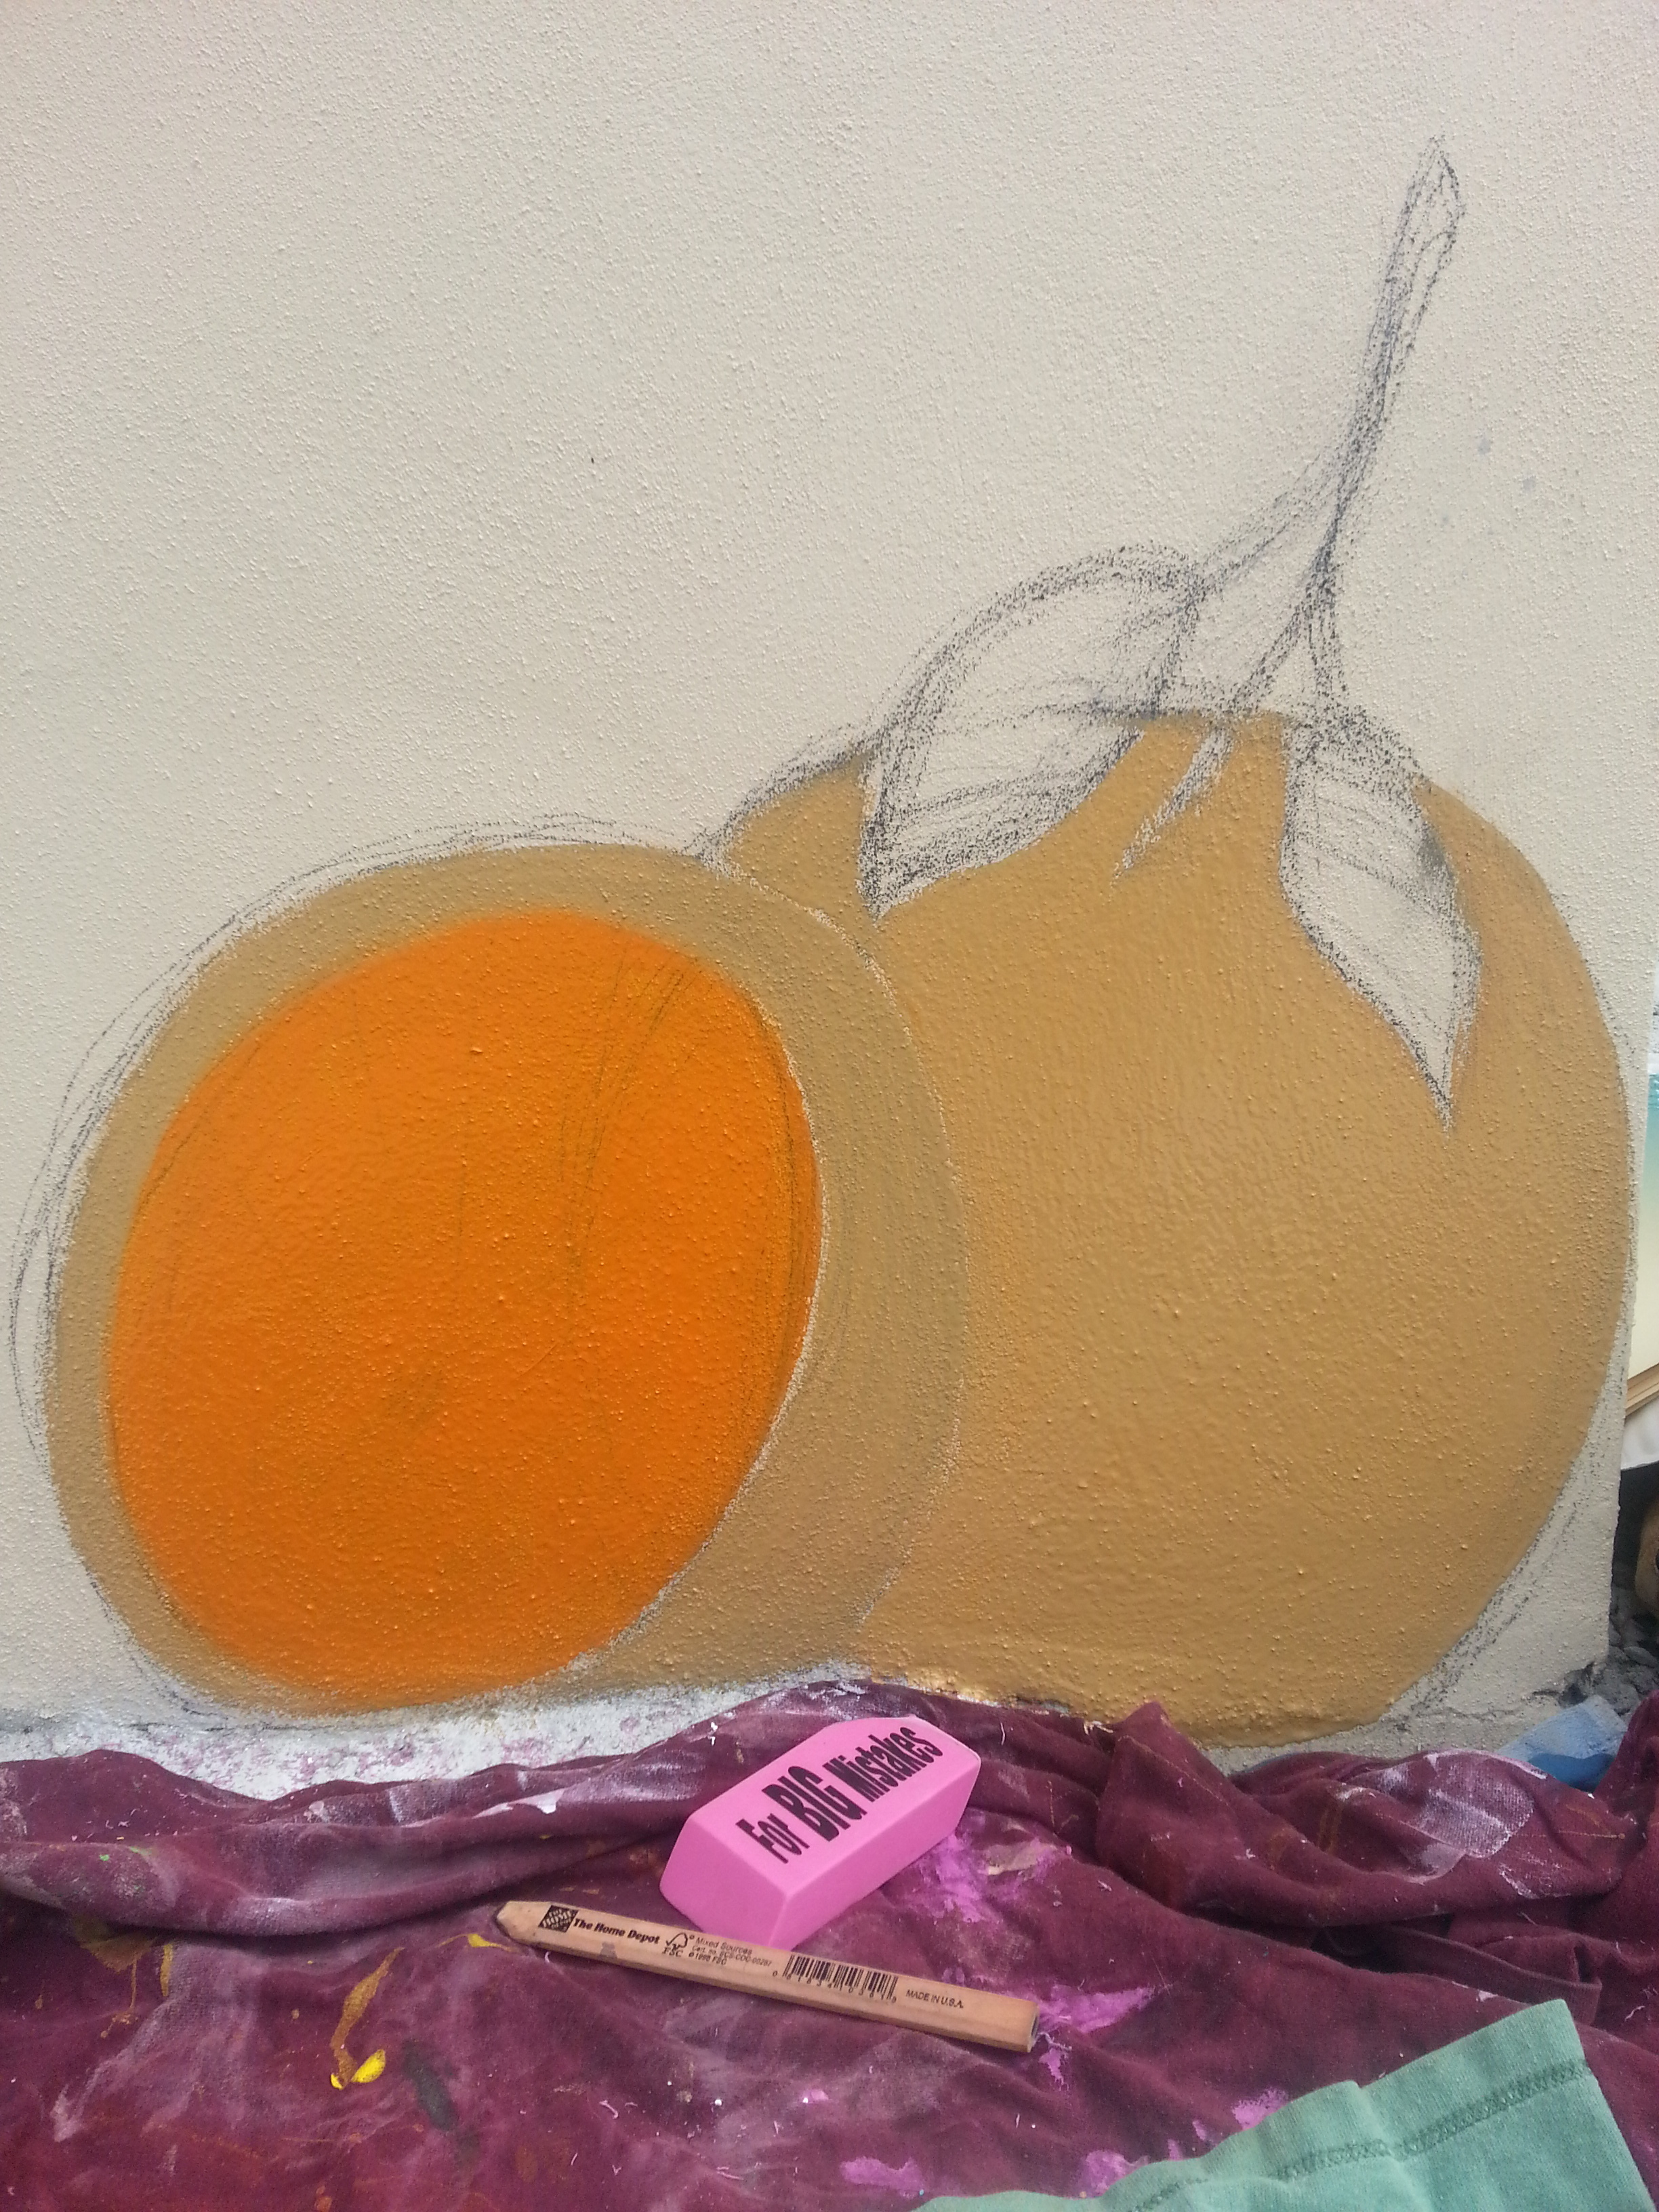 Grapefruit-mural-panel-1-ana-livingston-fine-artist-clearwater-florida.jpg